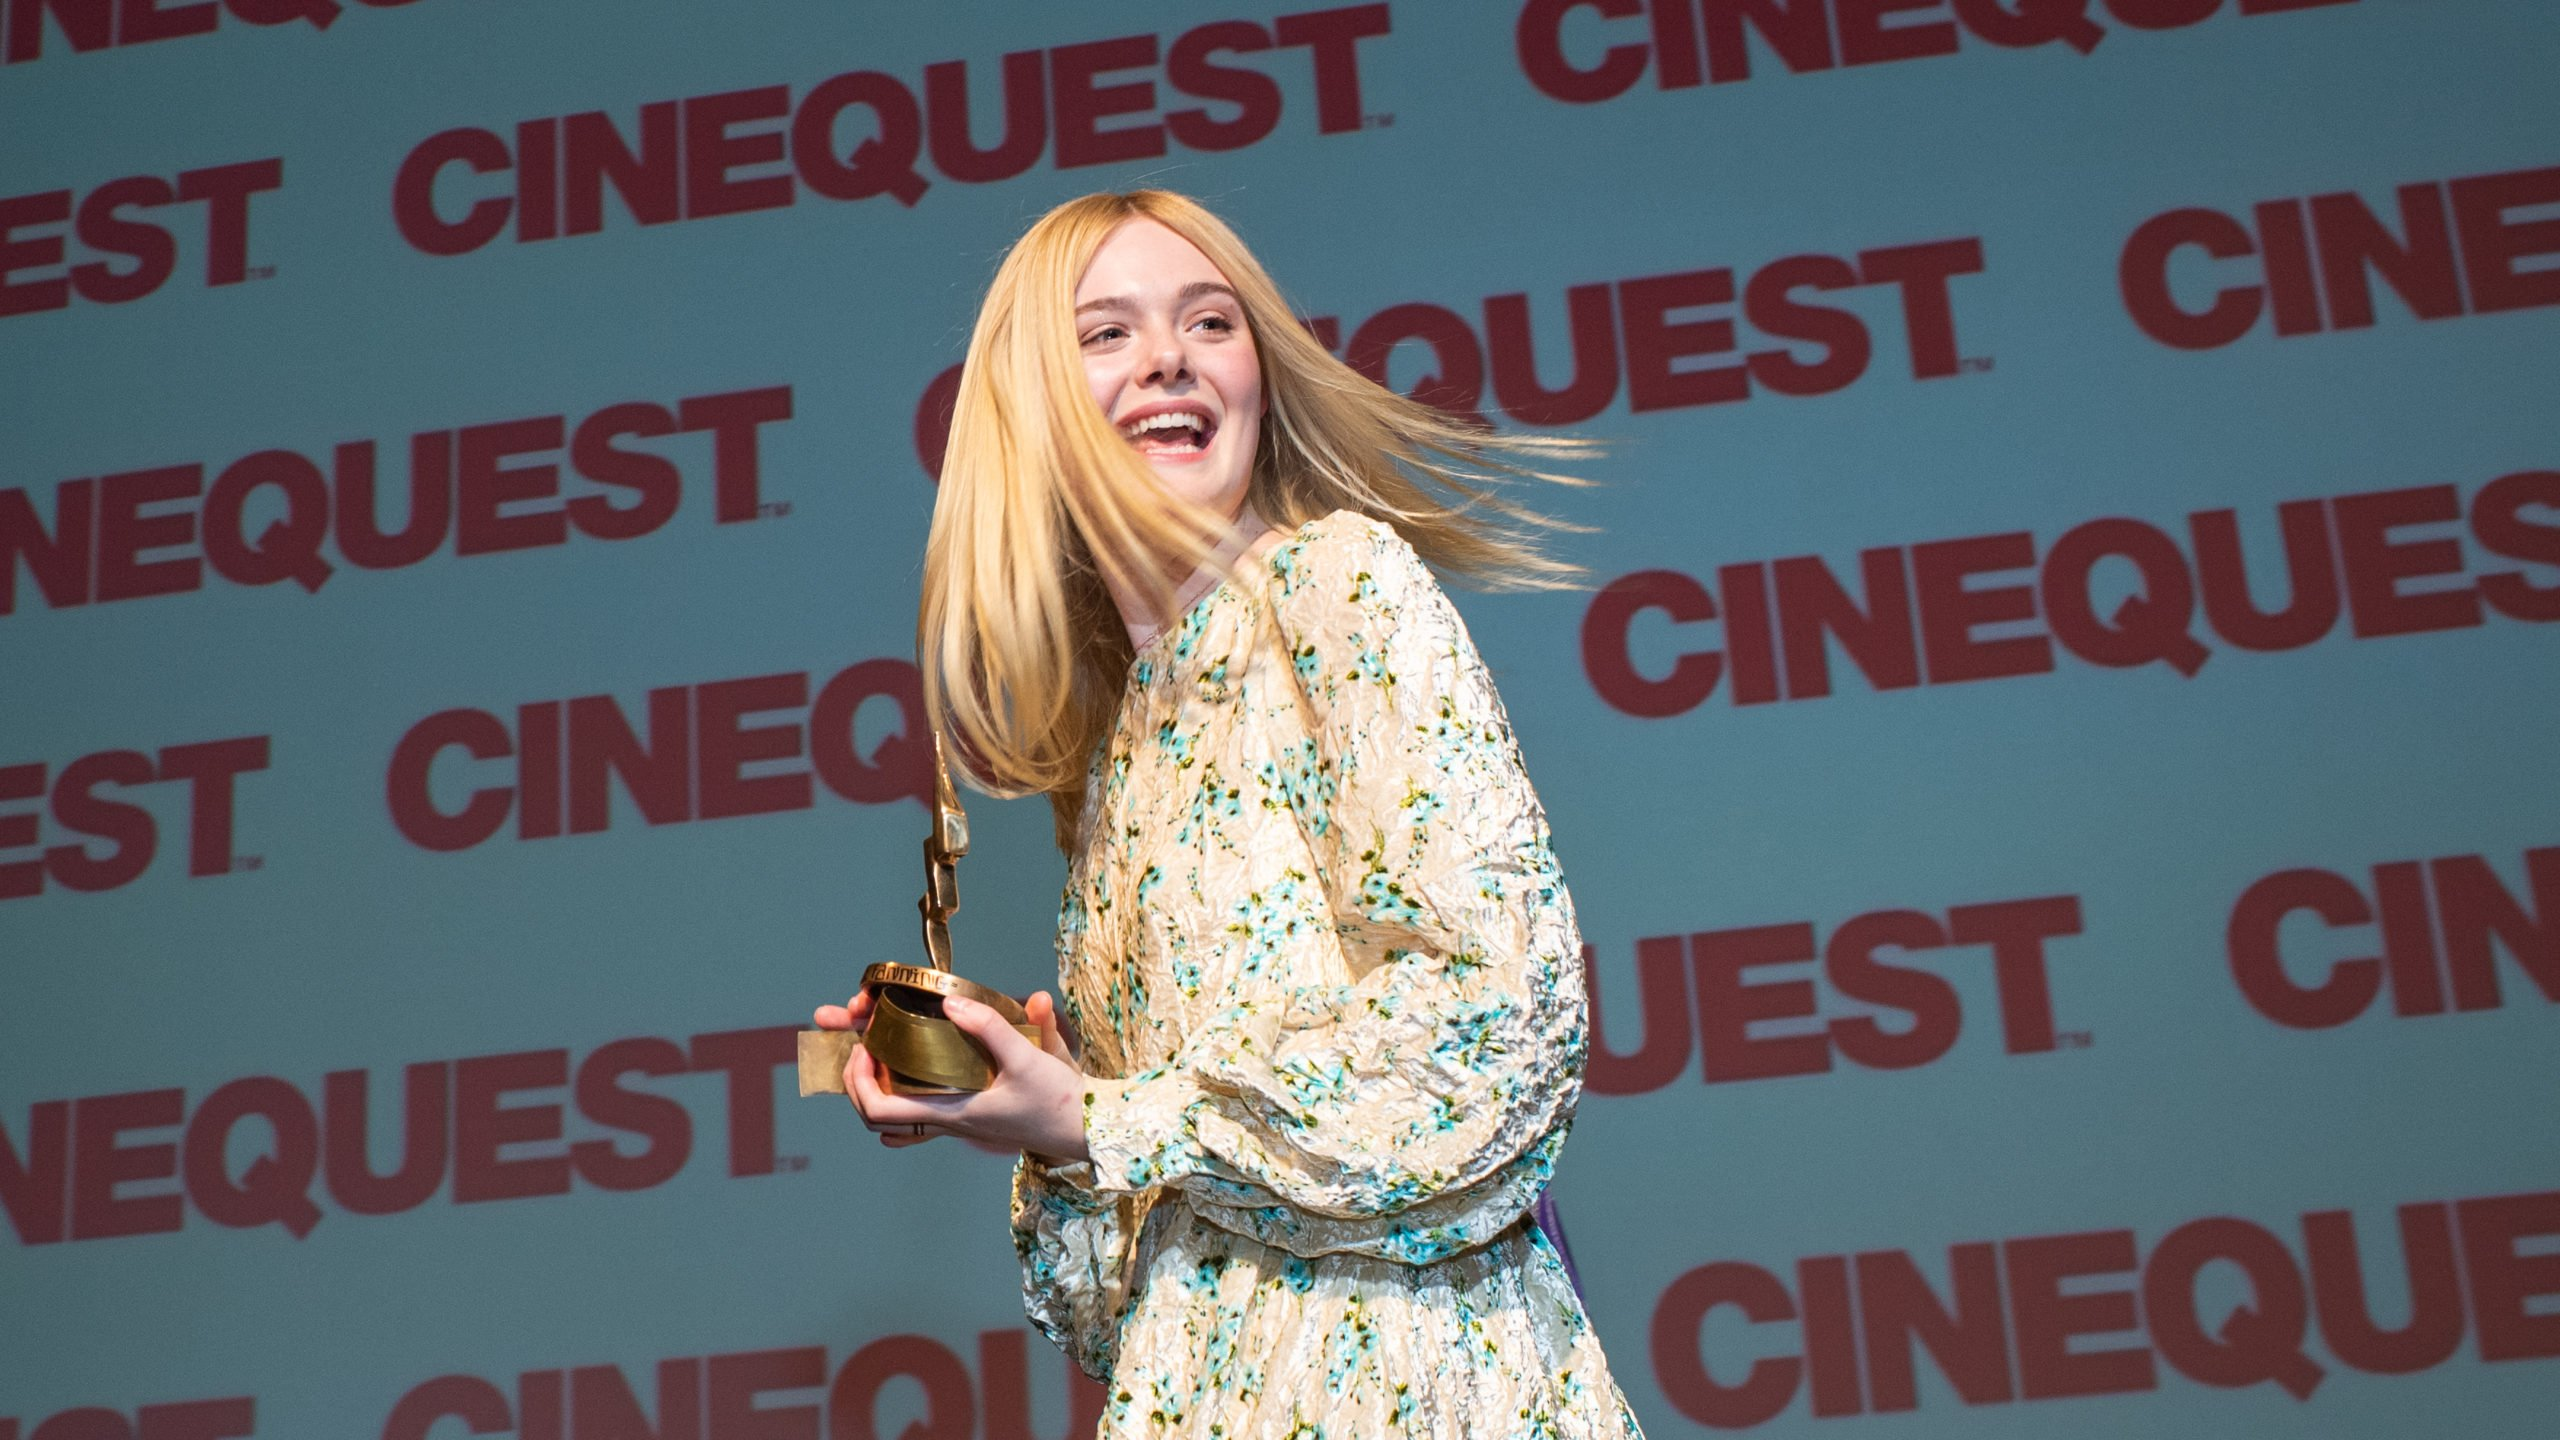 Elle Fanning at Cinequest